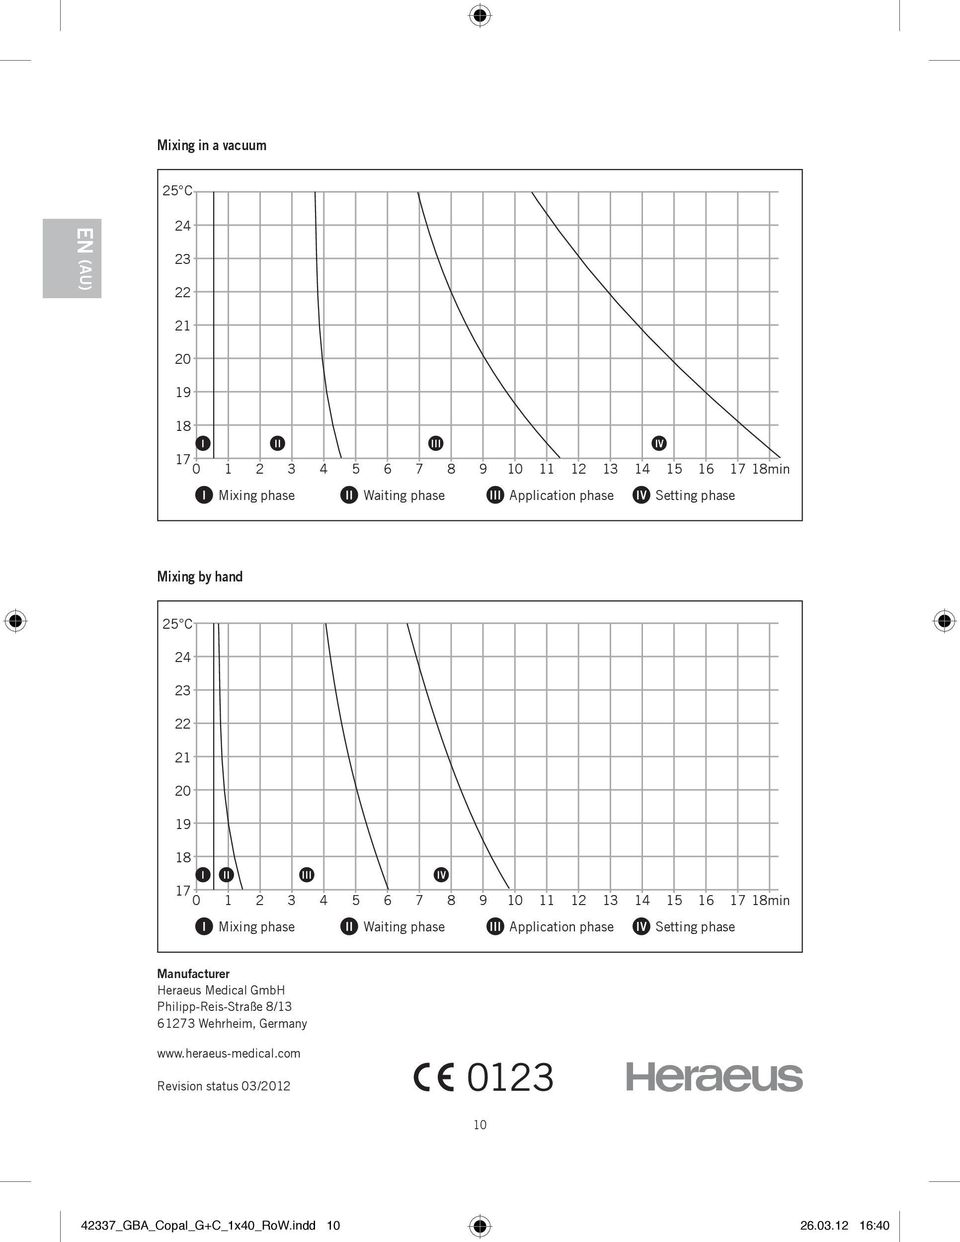 13 14 15 16 17 min I Mixing phase II Waiting phase III Application phase IV Setting phase Manufacturer Heraeus Medical GmbH